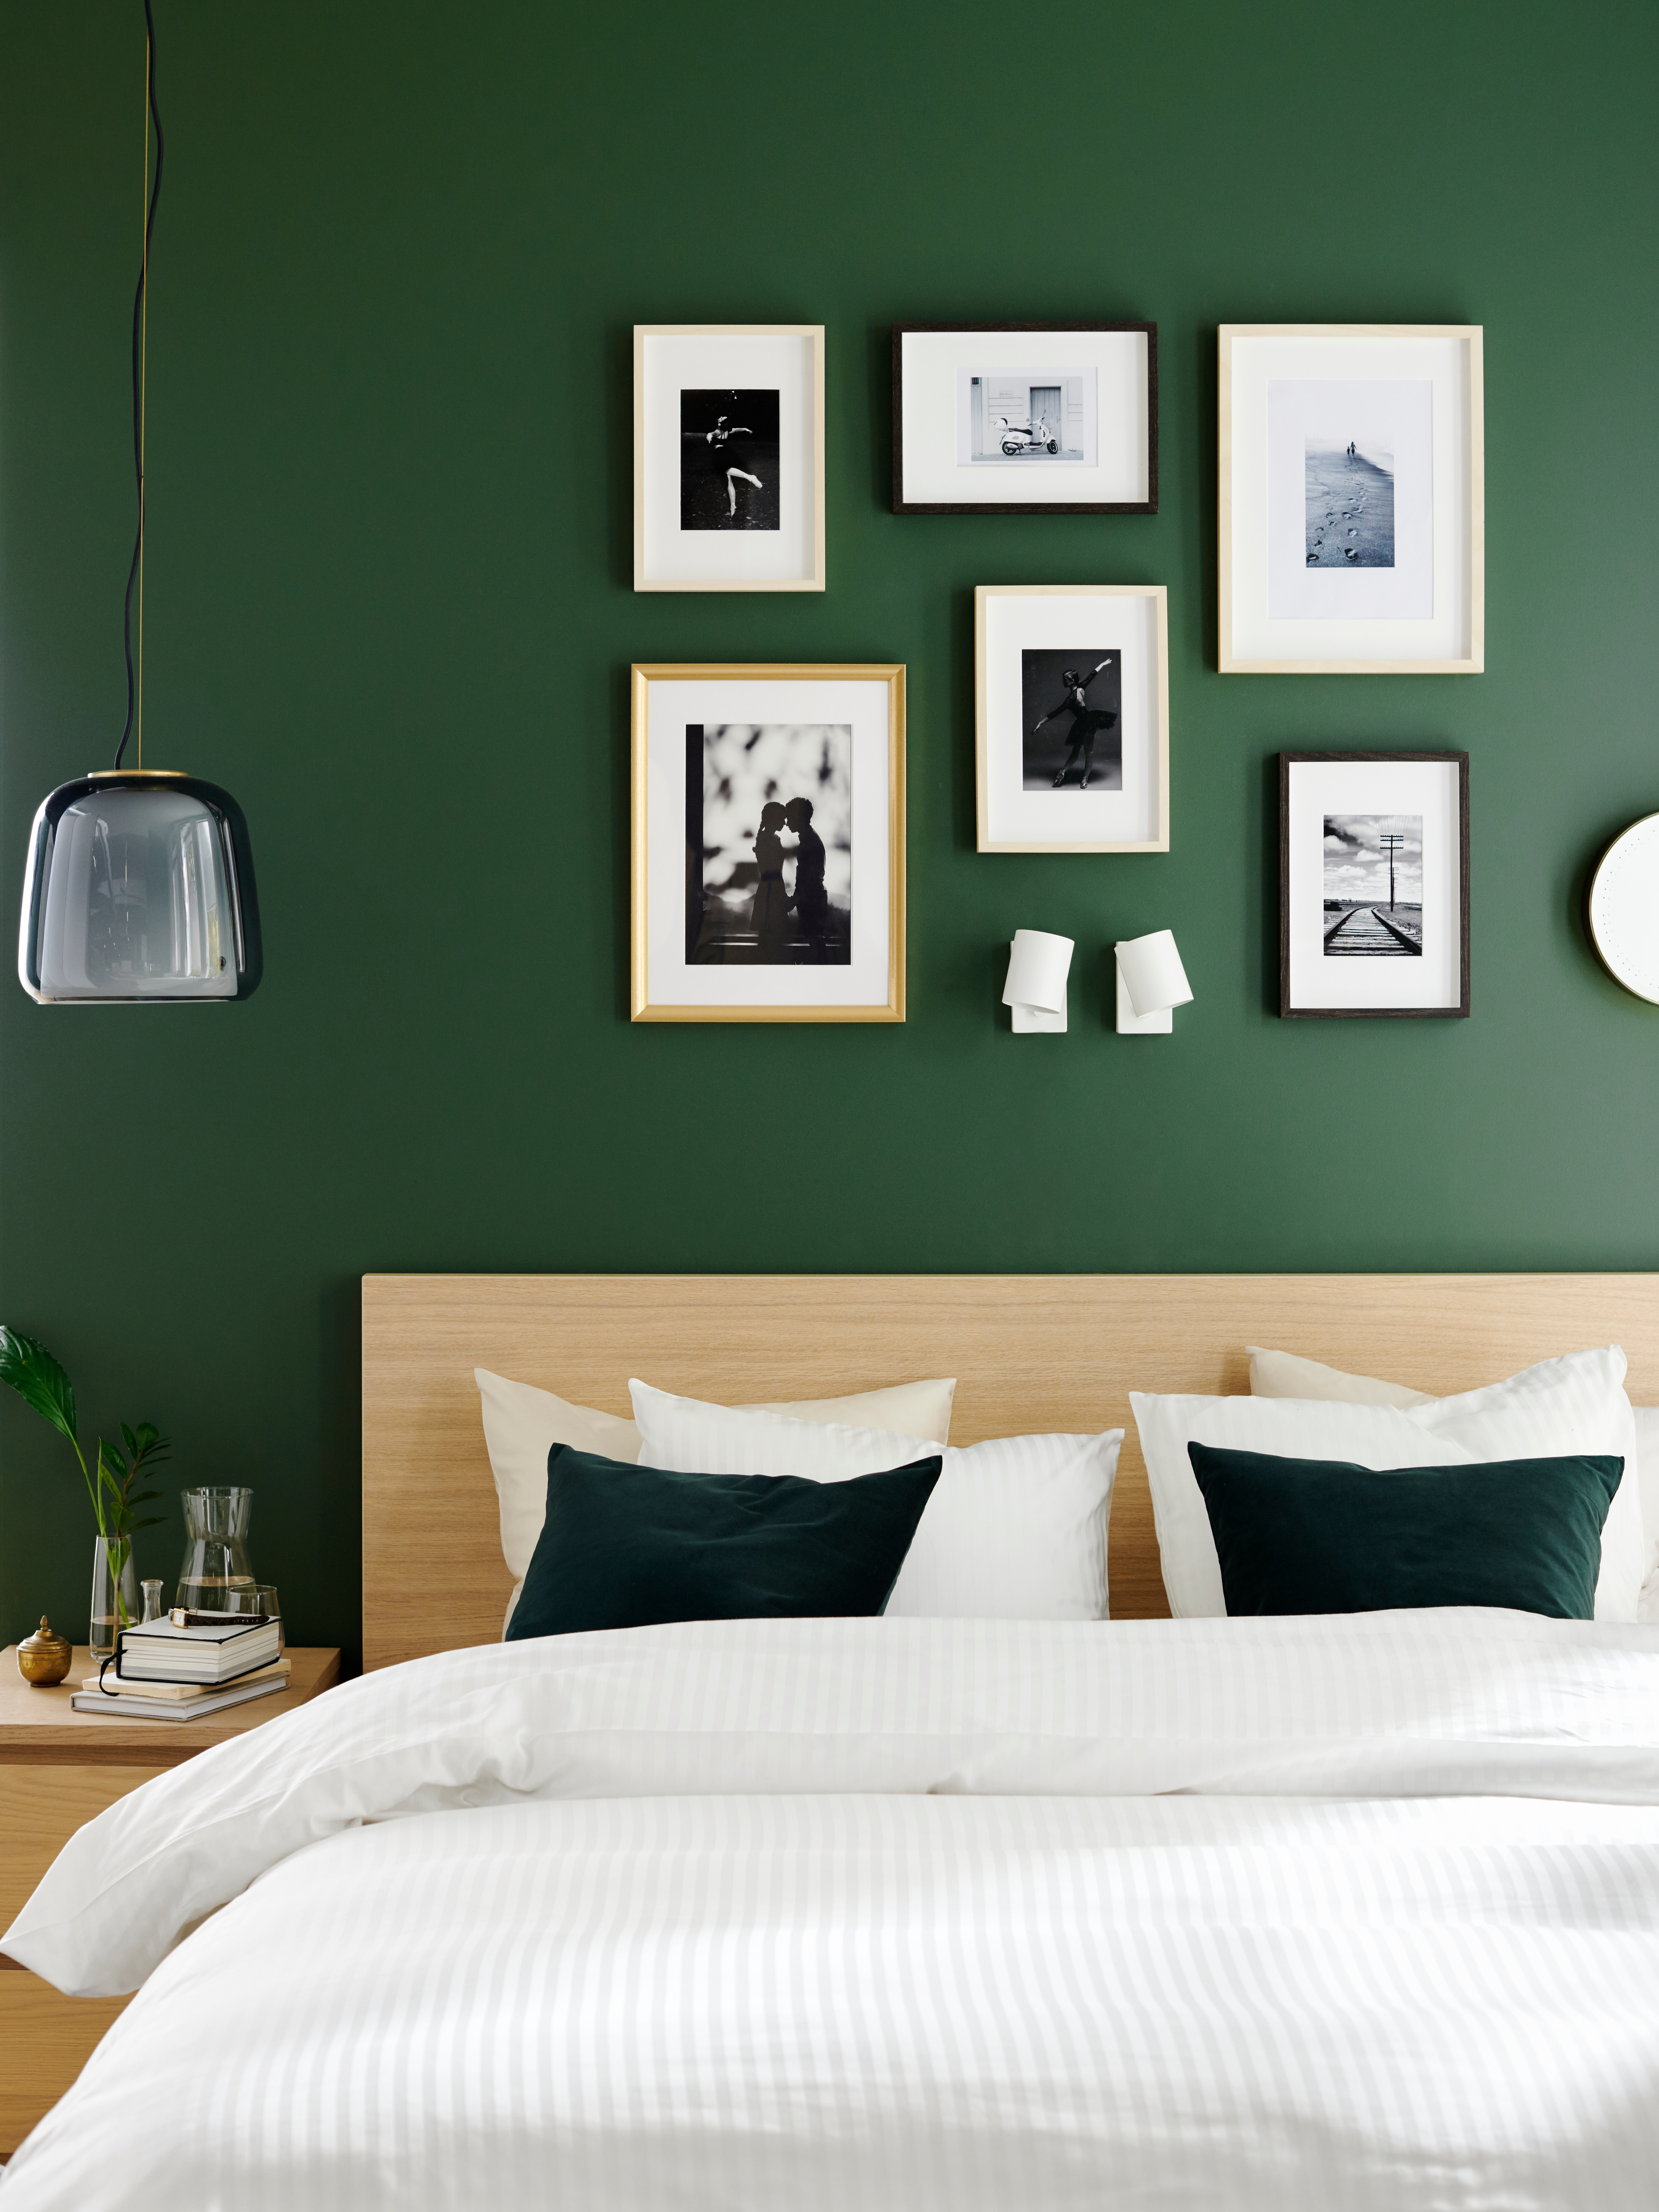 A bed with an oak veneer headboard, in front of a green wall full with pictures, some of which have a SILVERHÖJDEN frame.